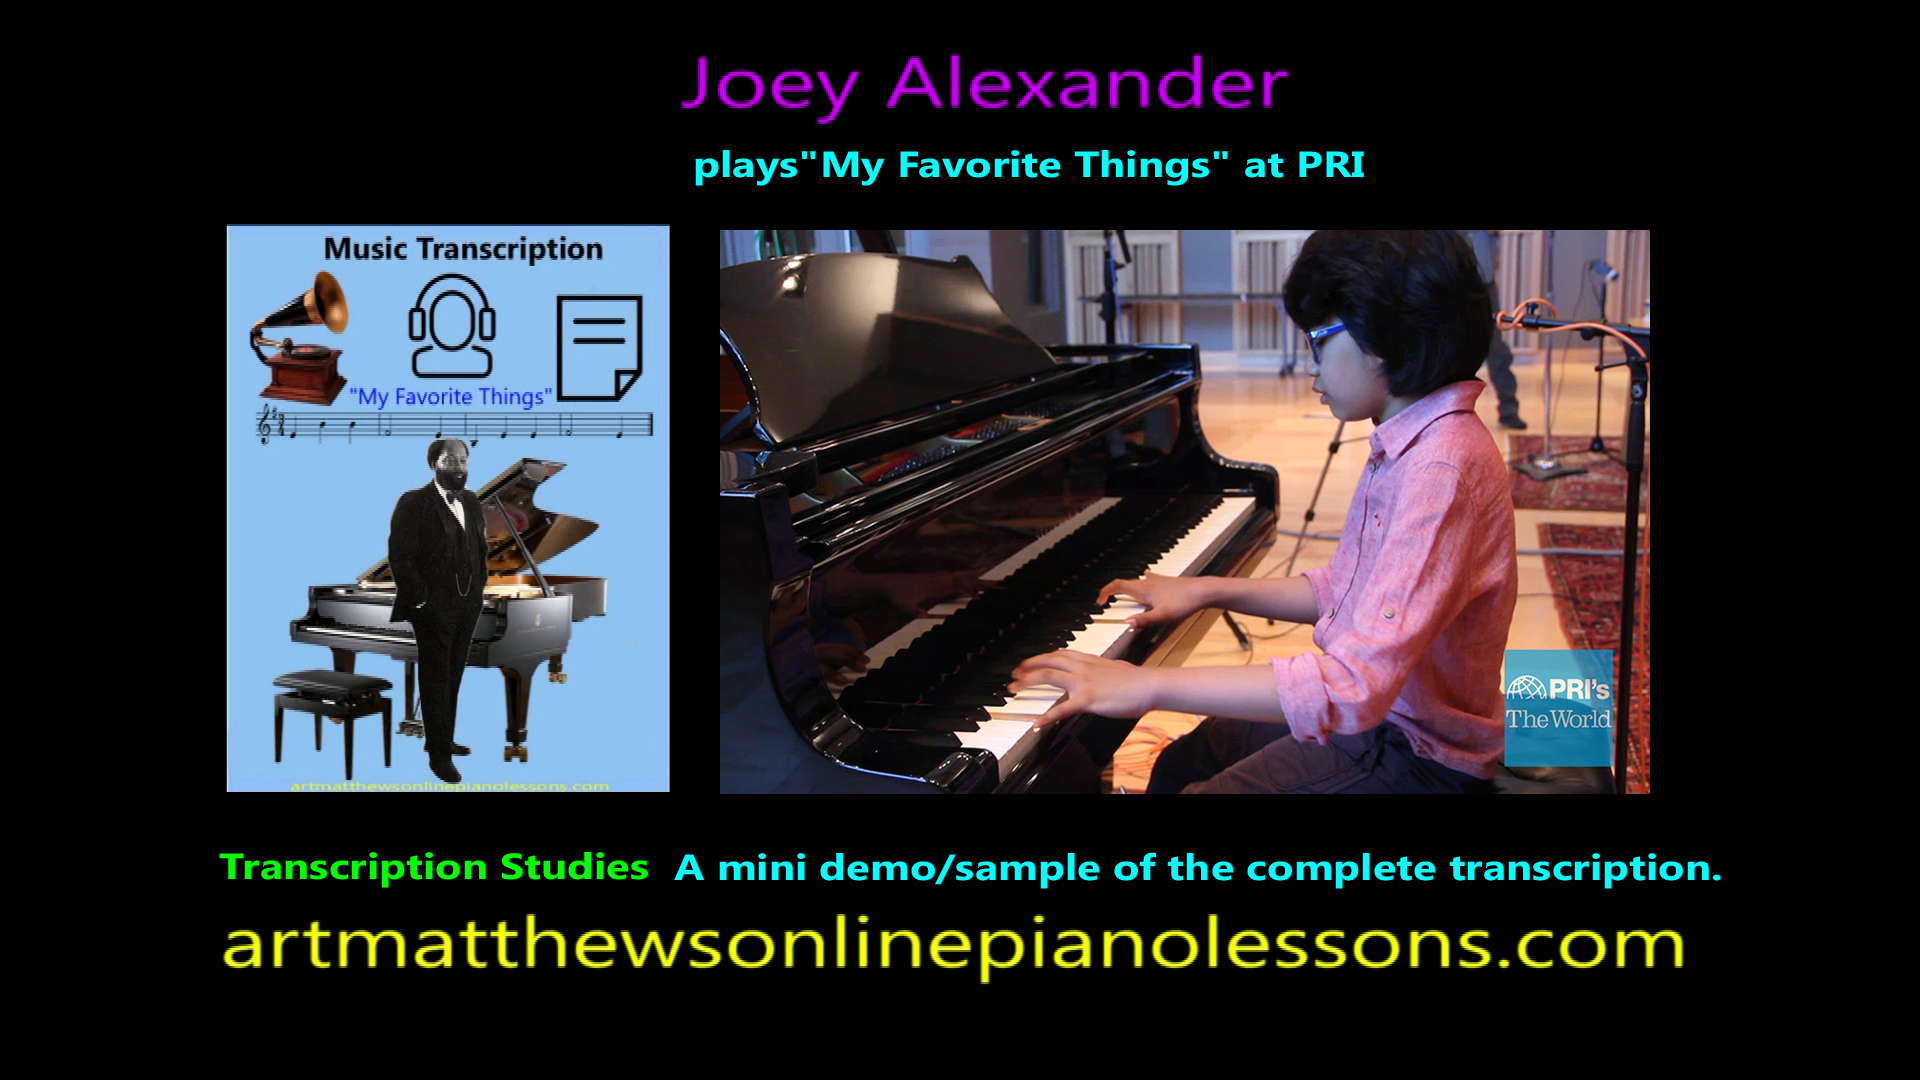 Joey Alexander 'My Favorite Things' on PRI The World